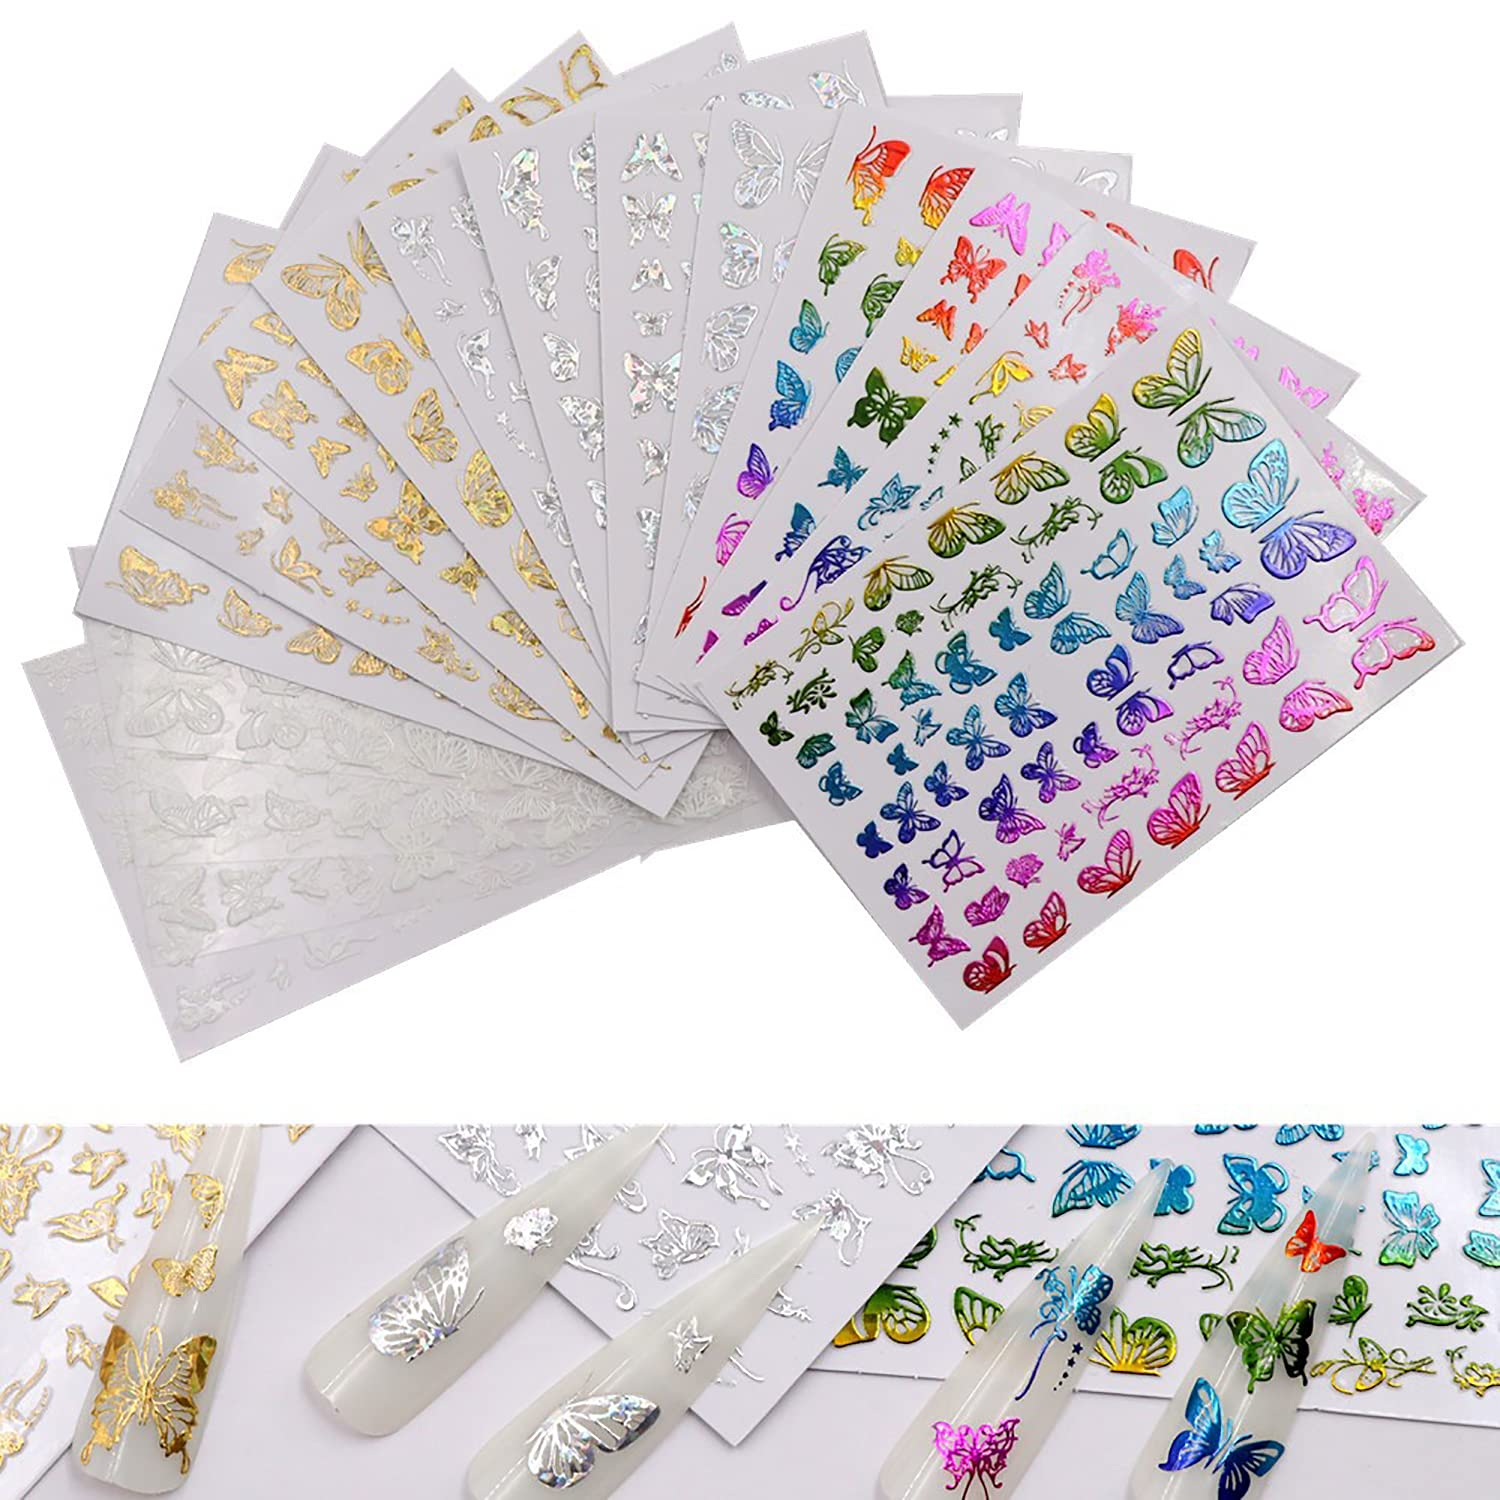 16 Sheets Butterfly Nail Art Stickers Max 73% OFF Selling and selling Laser Gold with Color